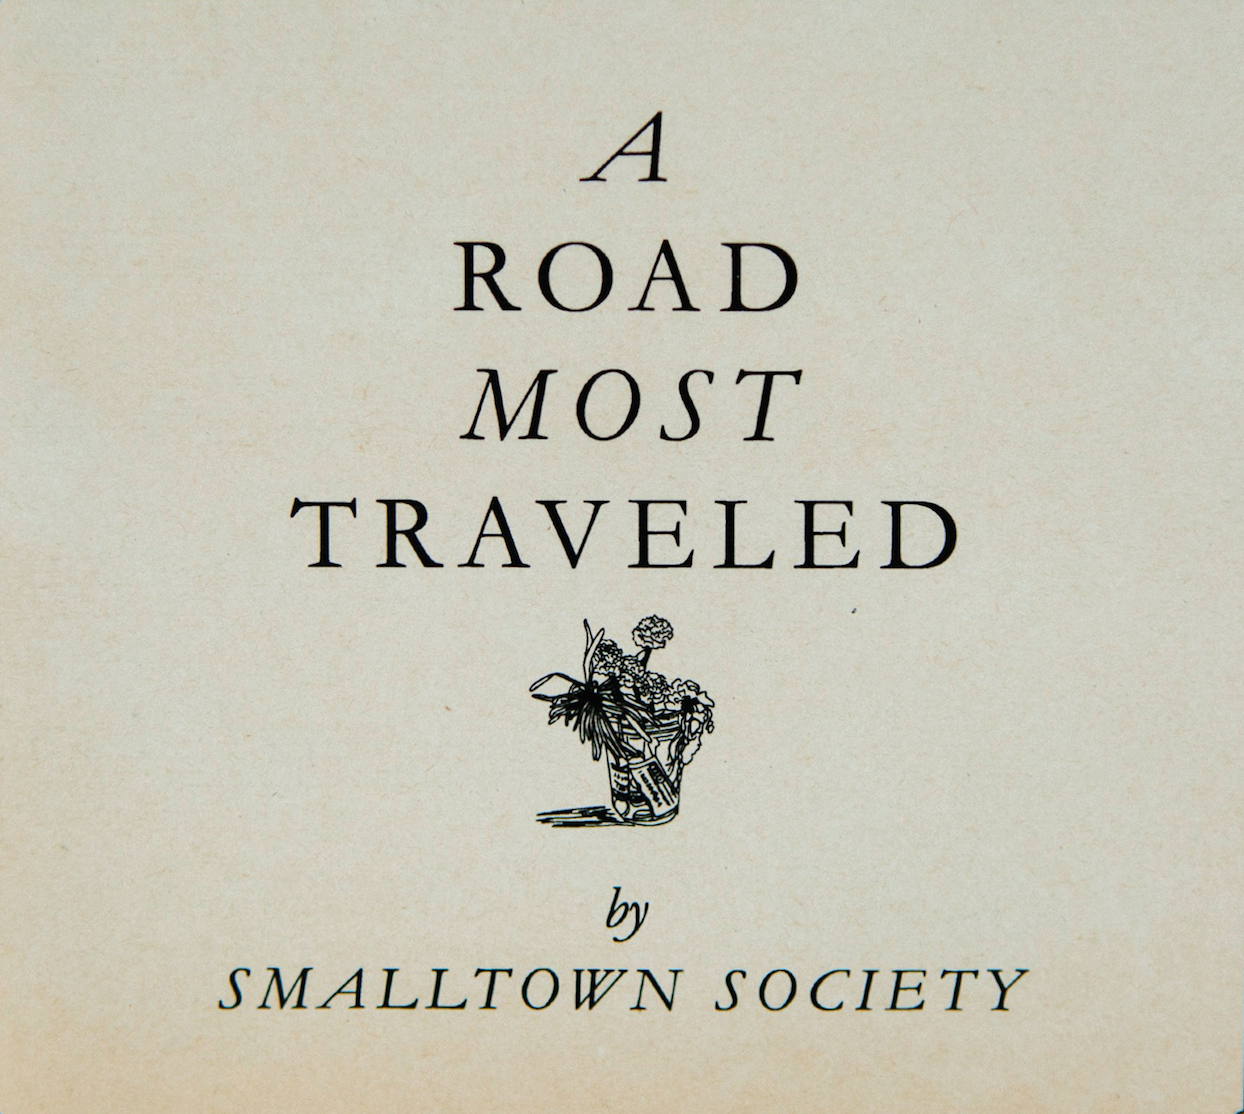 Smalltown Society - A Road Most Traveled